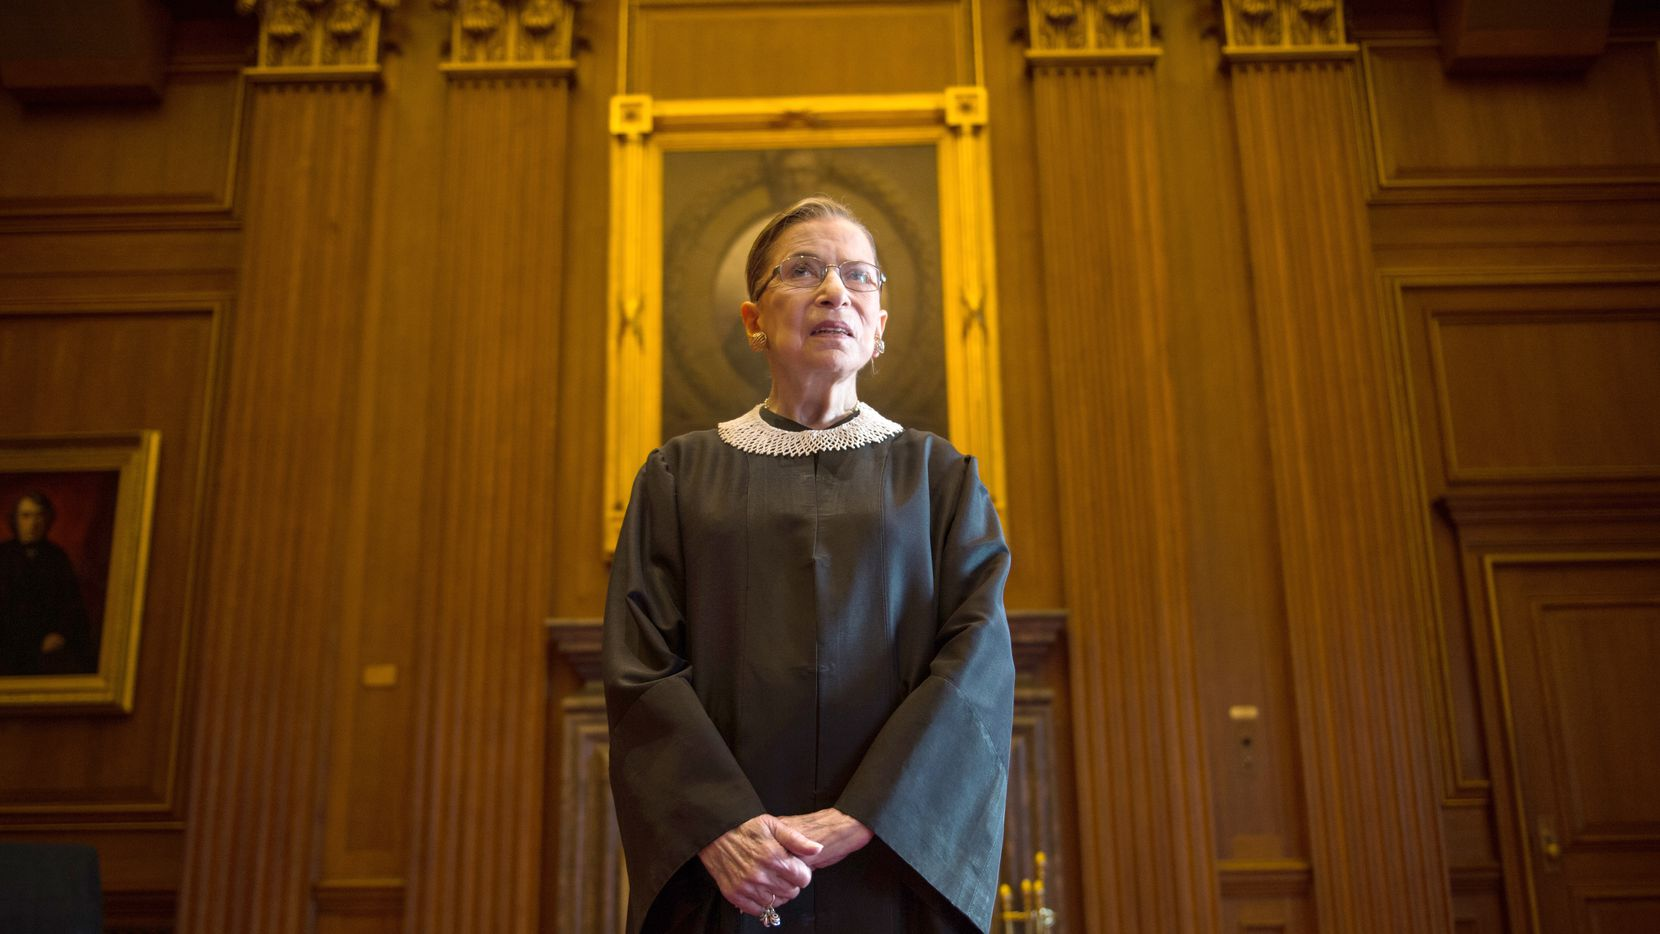 Supreme Court Justice Ruth Bader Ginsburg, photographed in the cast conference room at the Supreme Court on Aug. 30, 2013.